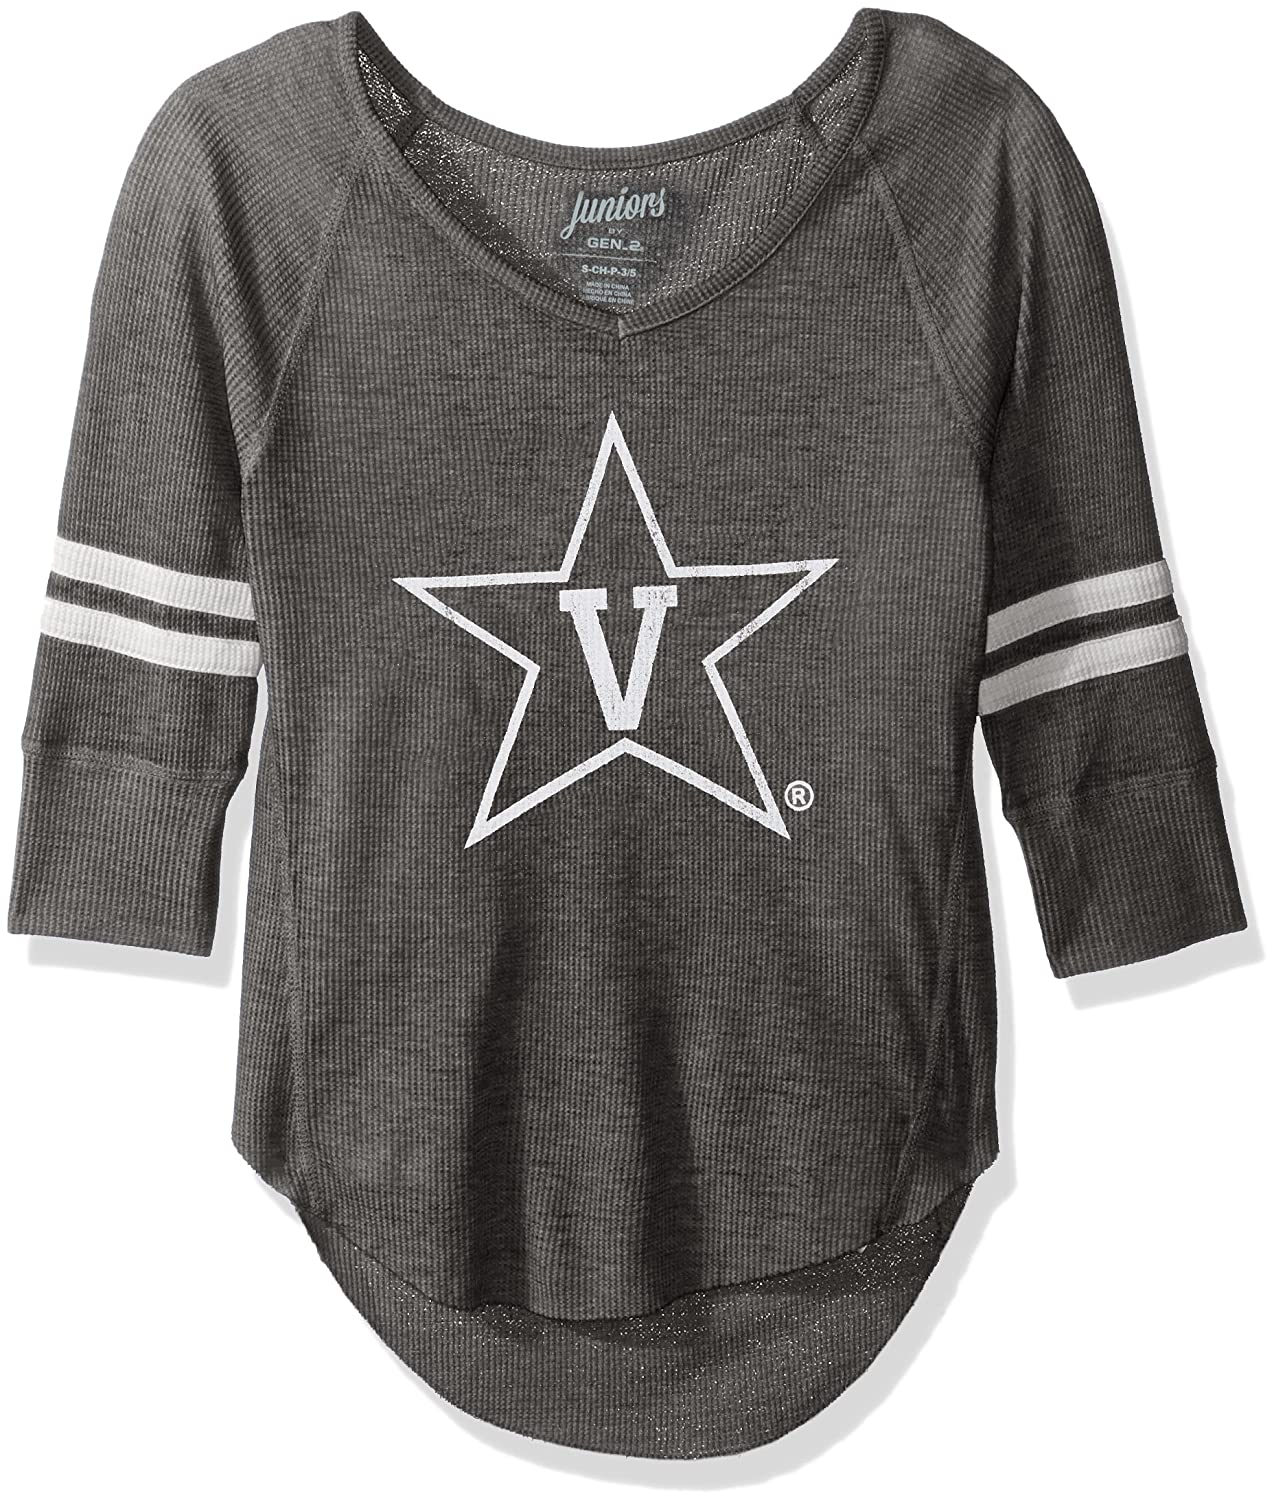 NCAA Arizona State Sun Devils Juniors Outerstuff Relaxed 3//4 Raglan Thermal Top Team Color X-Small 0-1